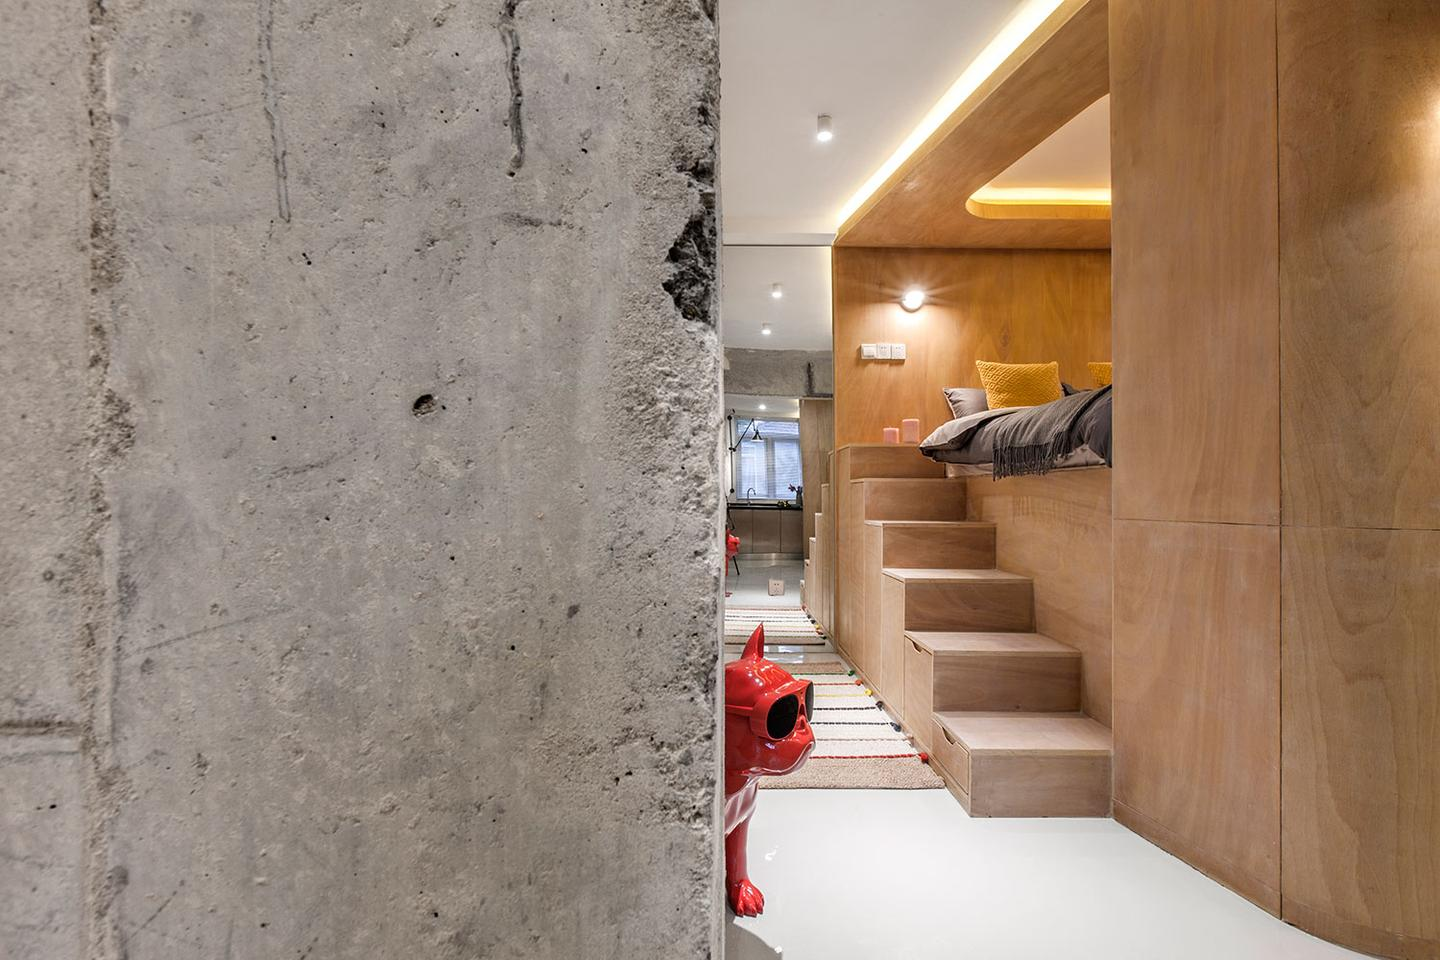 Chinese architectural firm TOWOdesign has recently transformed a tiny apartment in central Shanghai into a unique smart home